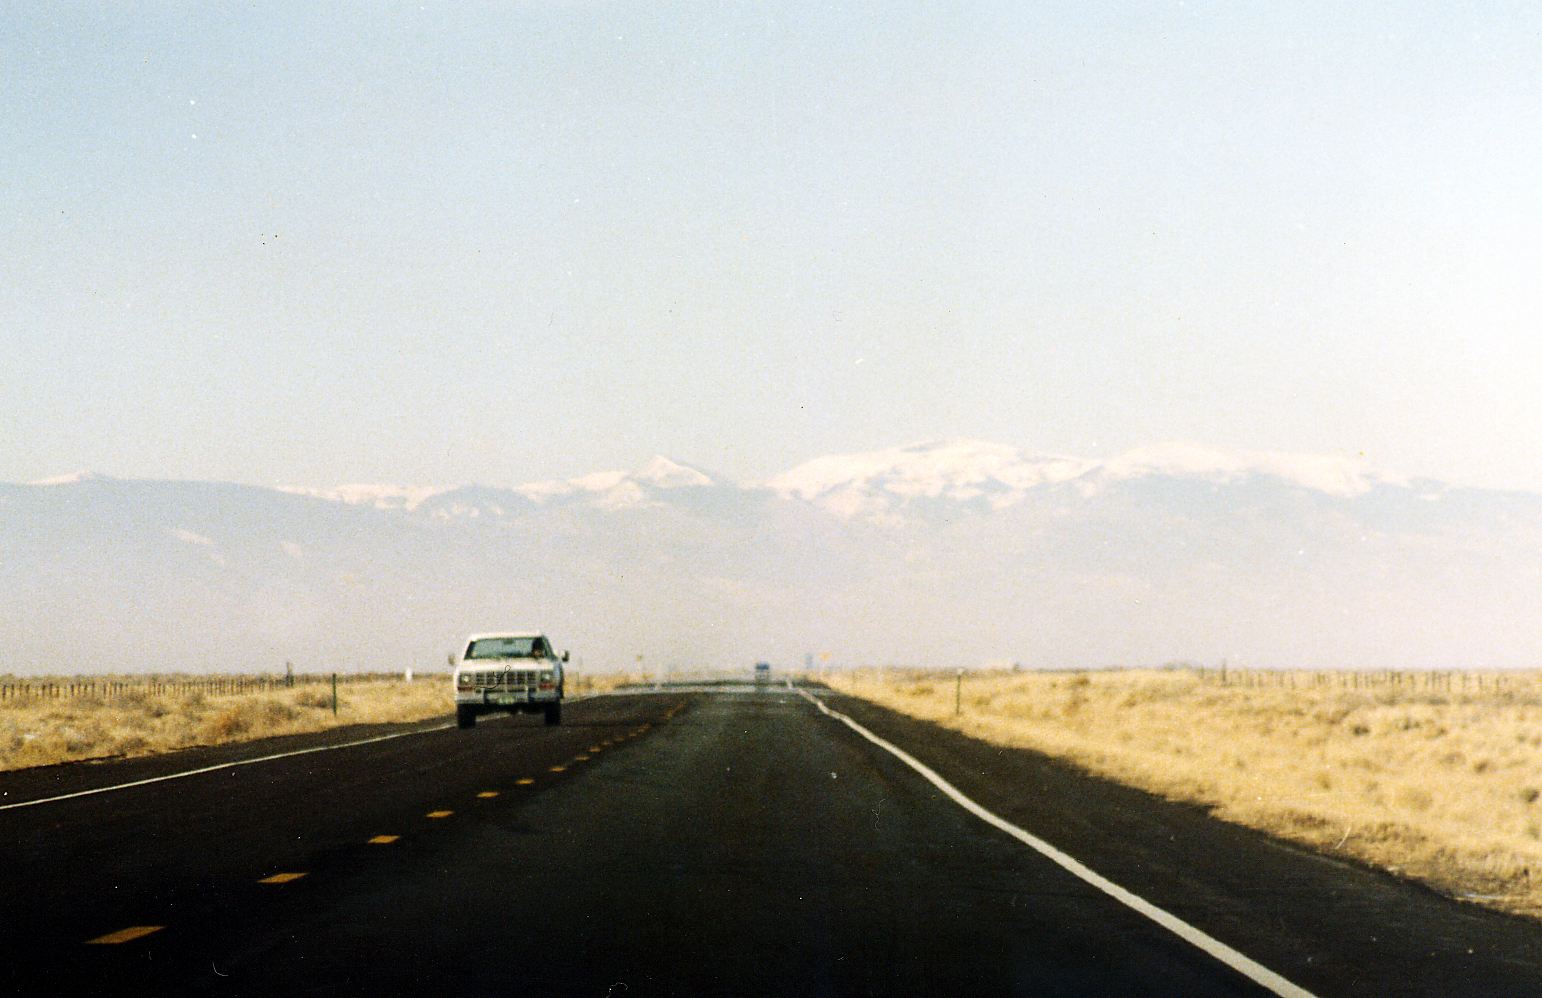 File:On the road, Colorado.jpg - Wikimedia ...